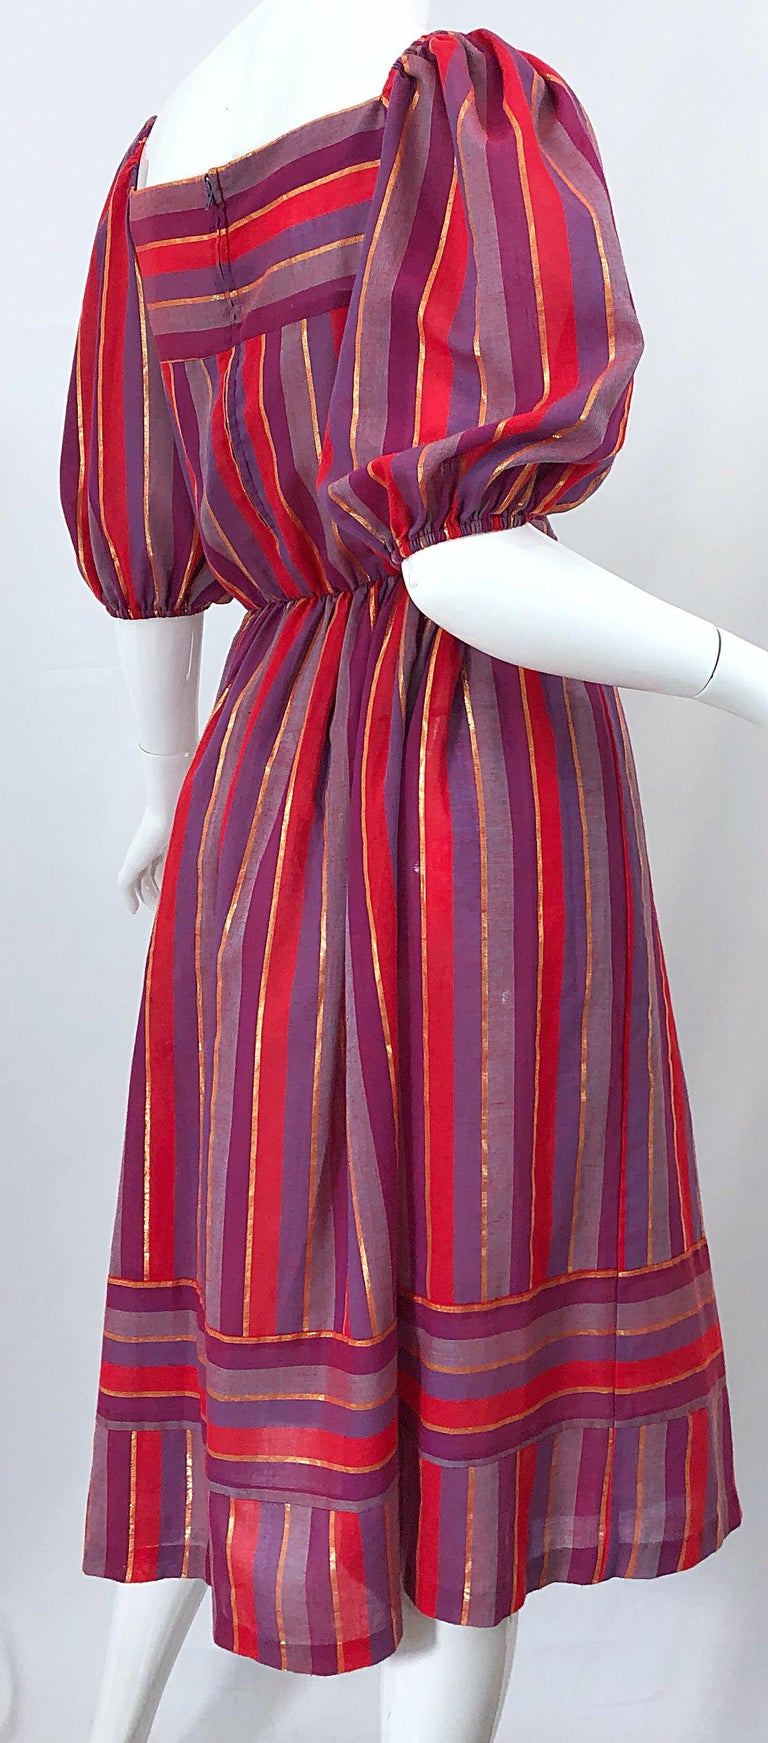 1970s Boho Chic Red + Purple + Gold Striped Cotton Voile 70s Vintage Dress For Sale 9